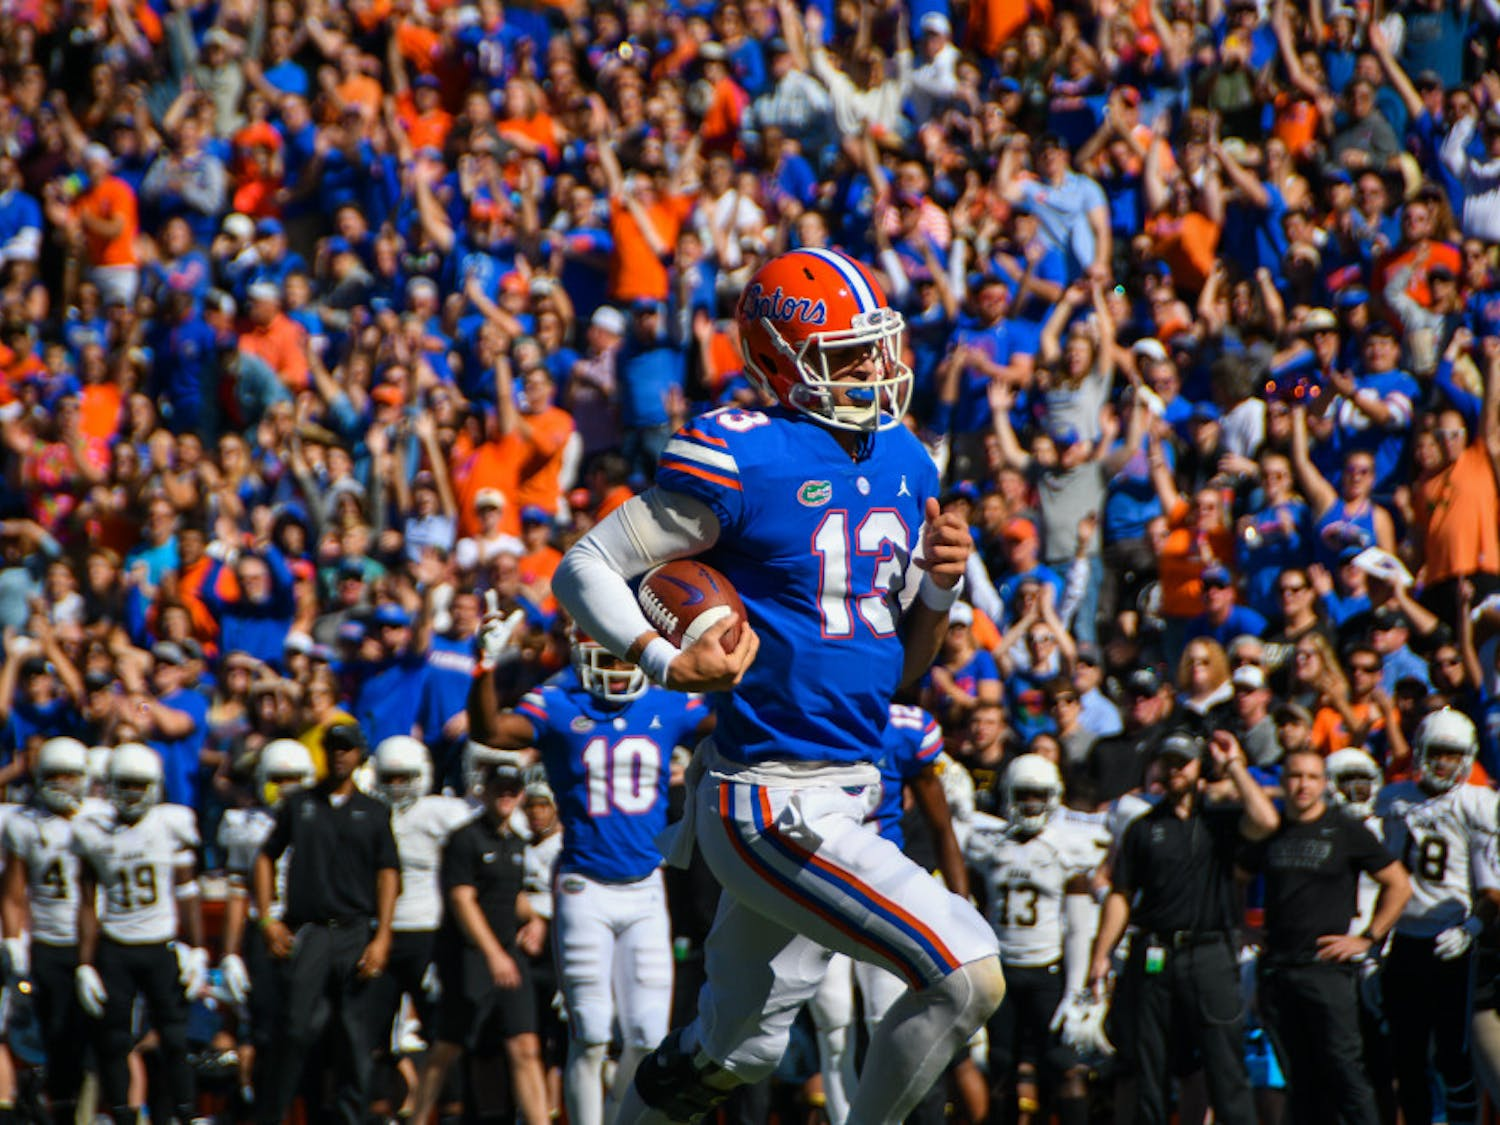 Florida quarterback Feleipe Franks went 19-for-27 with 274 yards and three touchdowns during UF's win over Idaho.